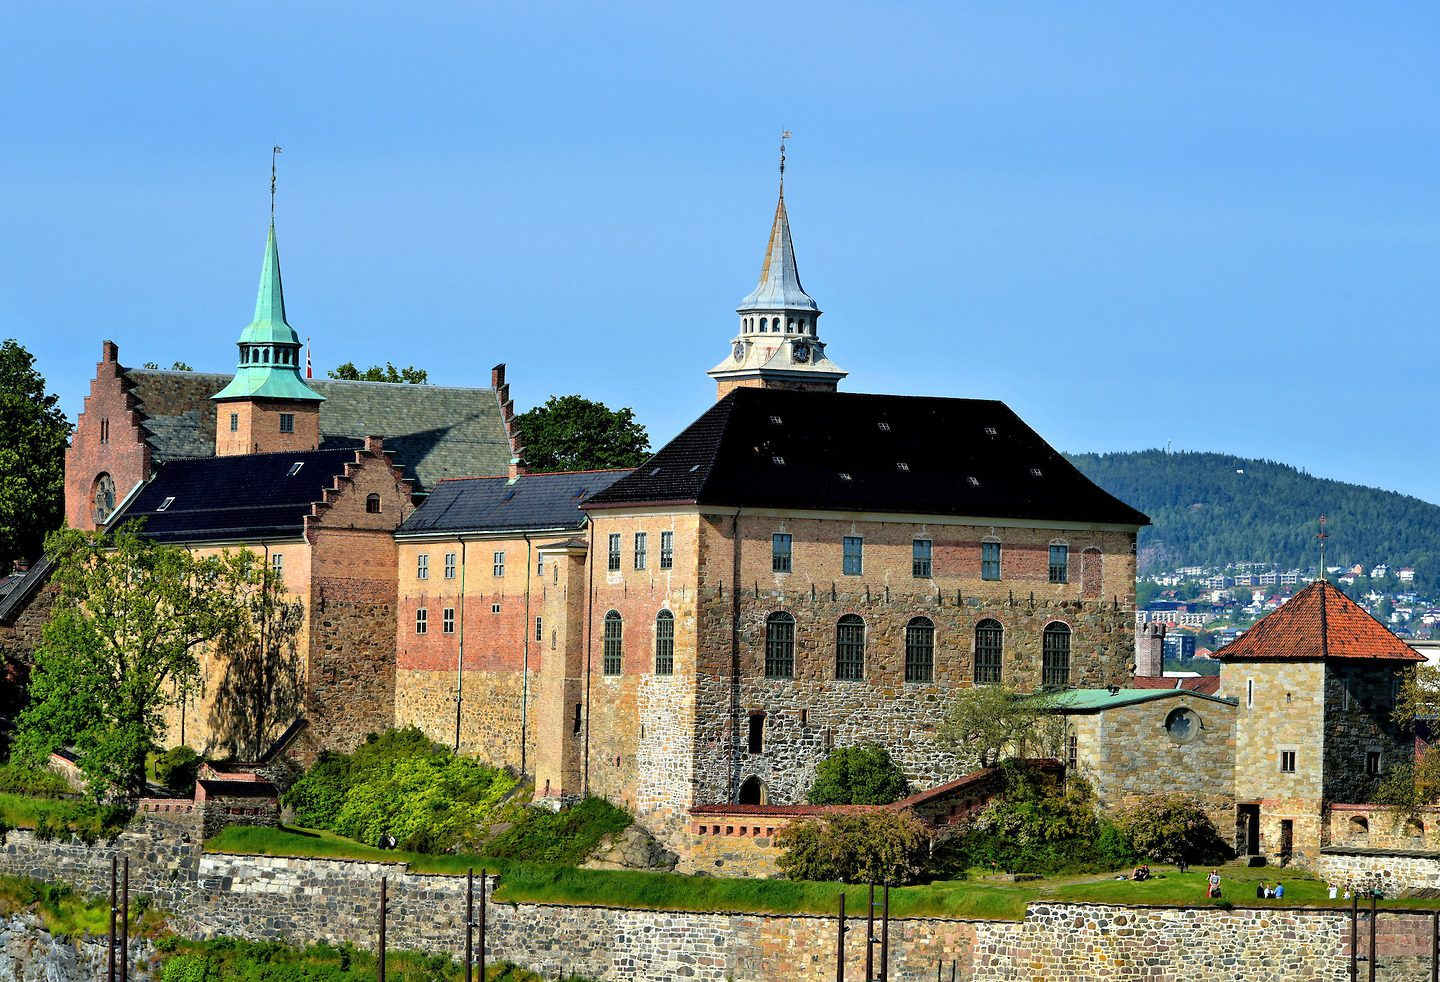 Norway-Oslo-Akershus-Fortress-Oslo-Fjord-1440x982